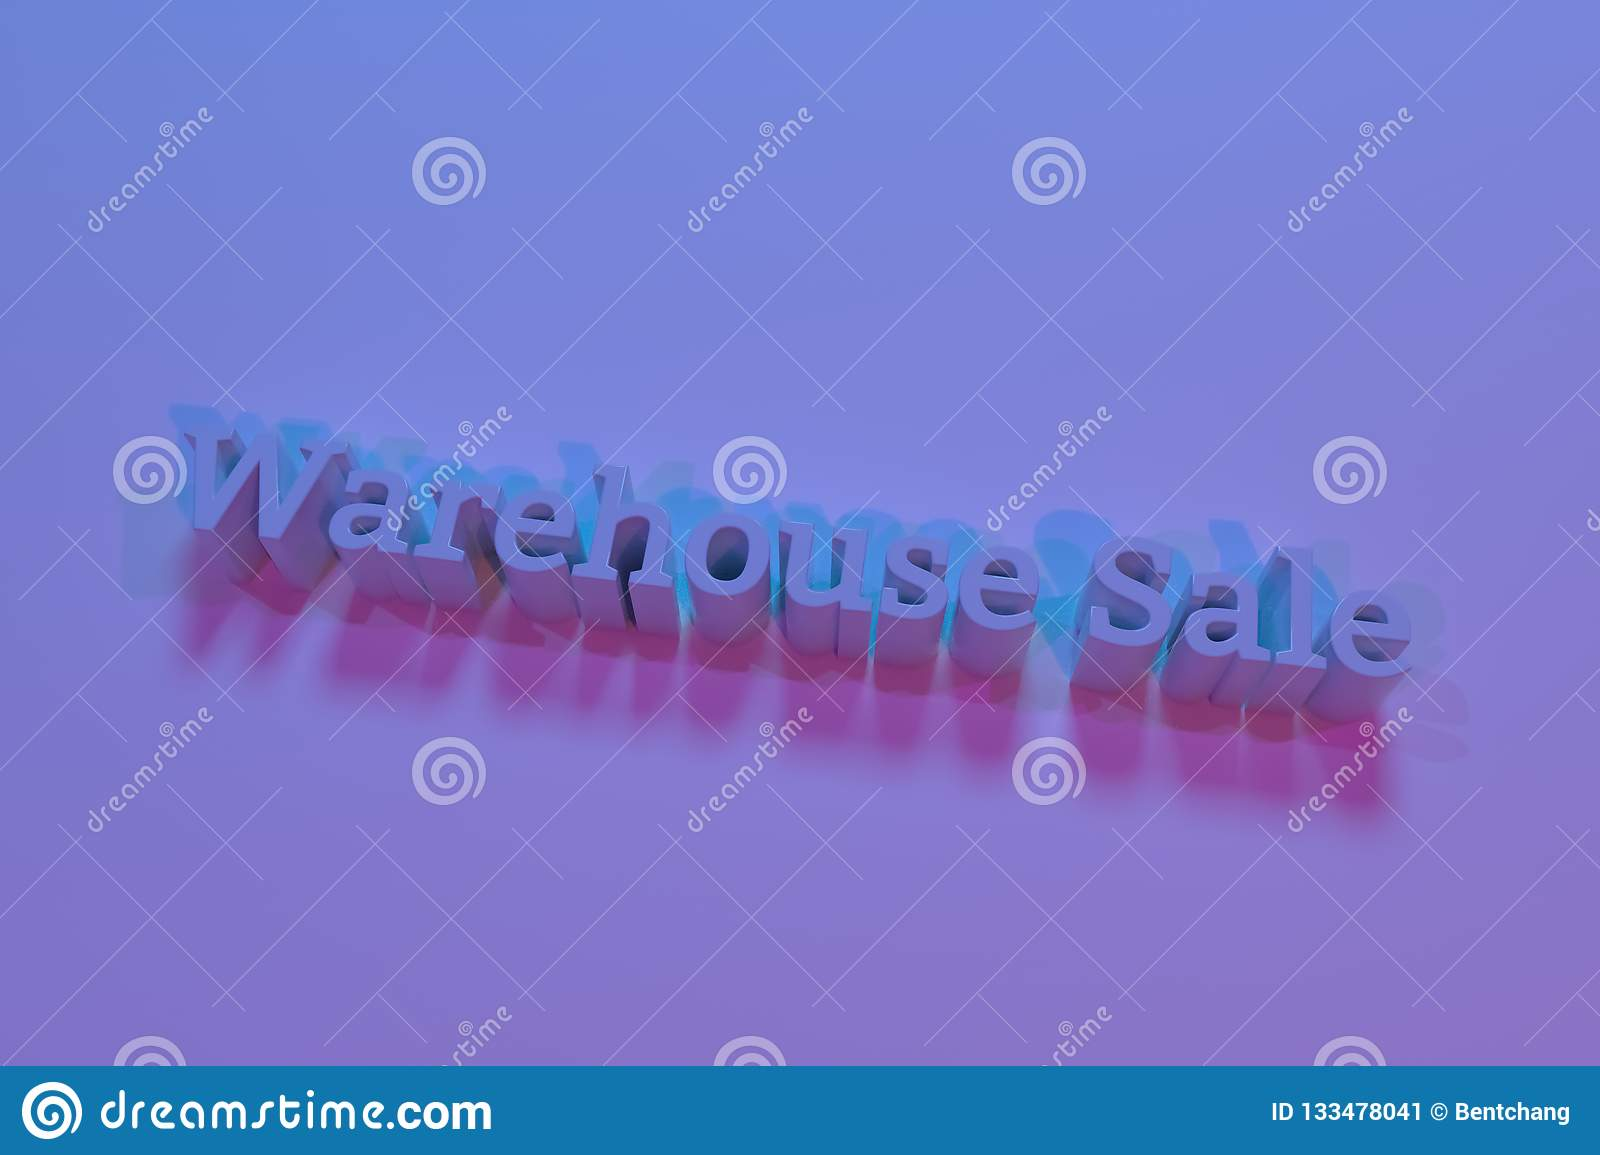 Warehouse sale, 3D rendering. CGI keywords. For graphic design or background, typography.